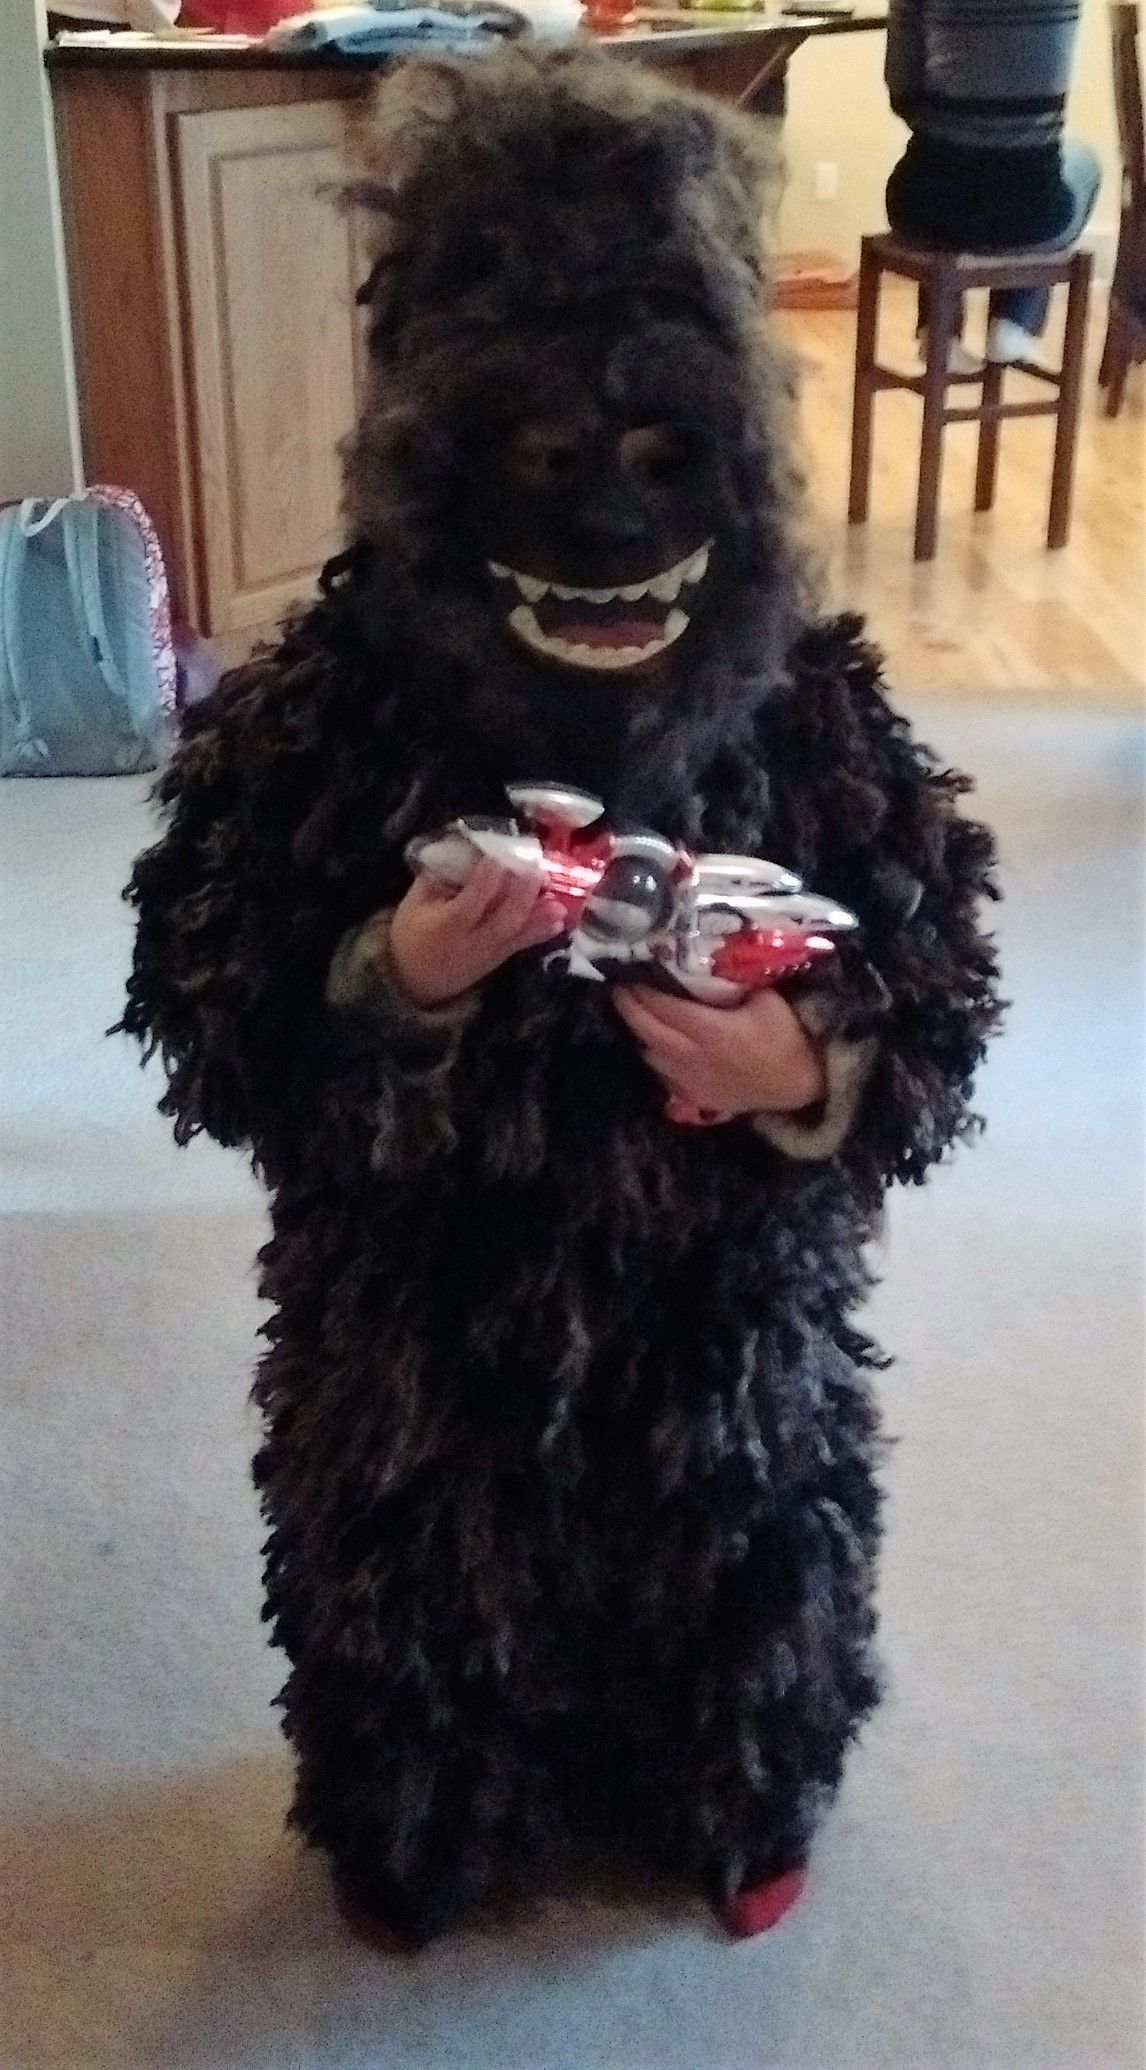 DYI Bigfoot costume I got my inspiration from the costume in the link shared below. I sewed pieces of yarn onto an old costume and bushed out the yarn to ... & Bigfoot - Halloween Costume Contest at Costume-Works.com | Pinterest ...